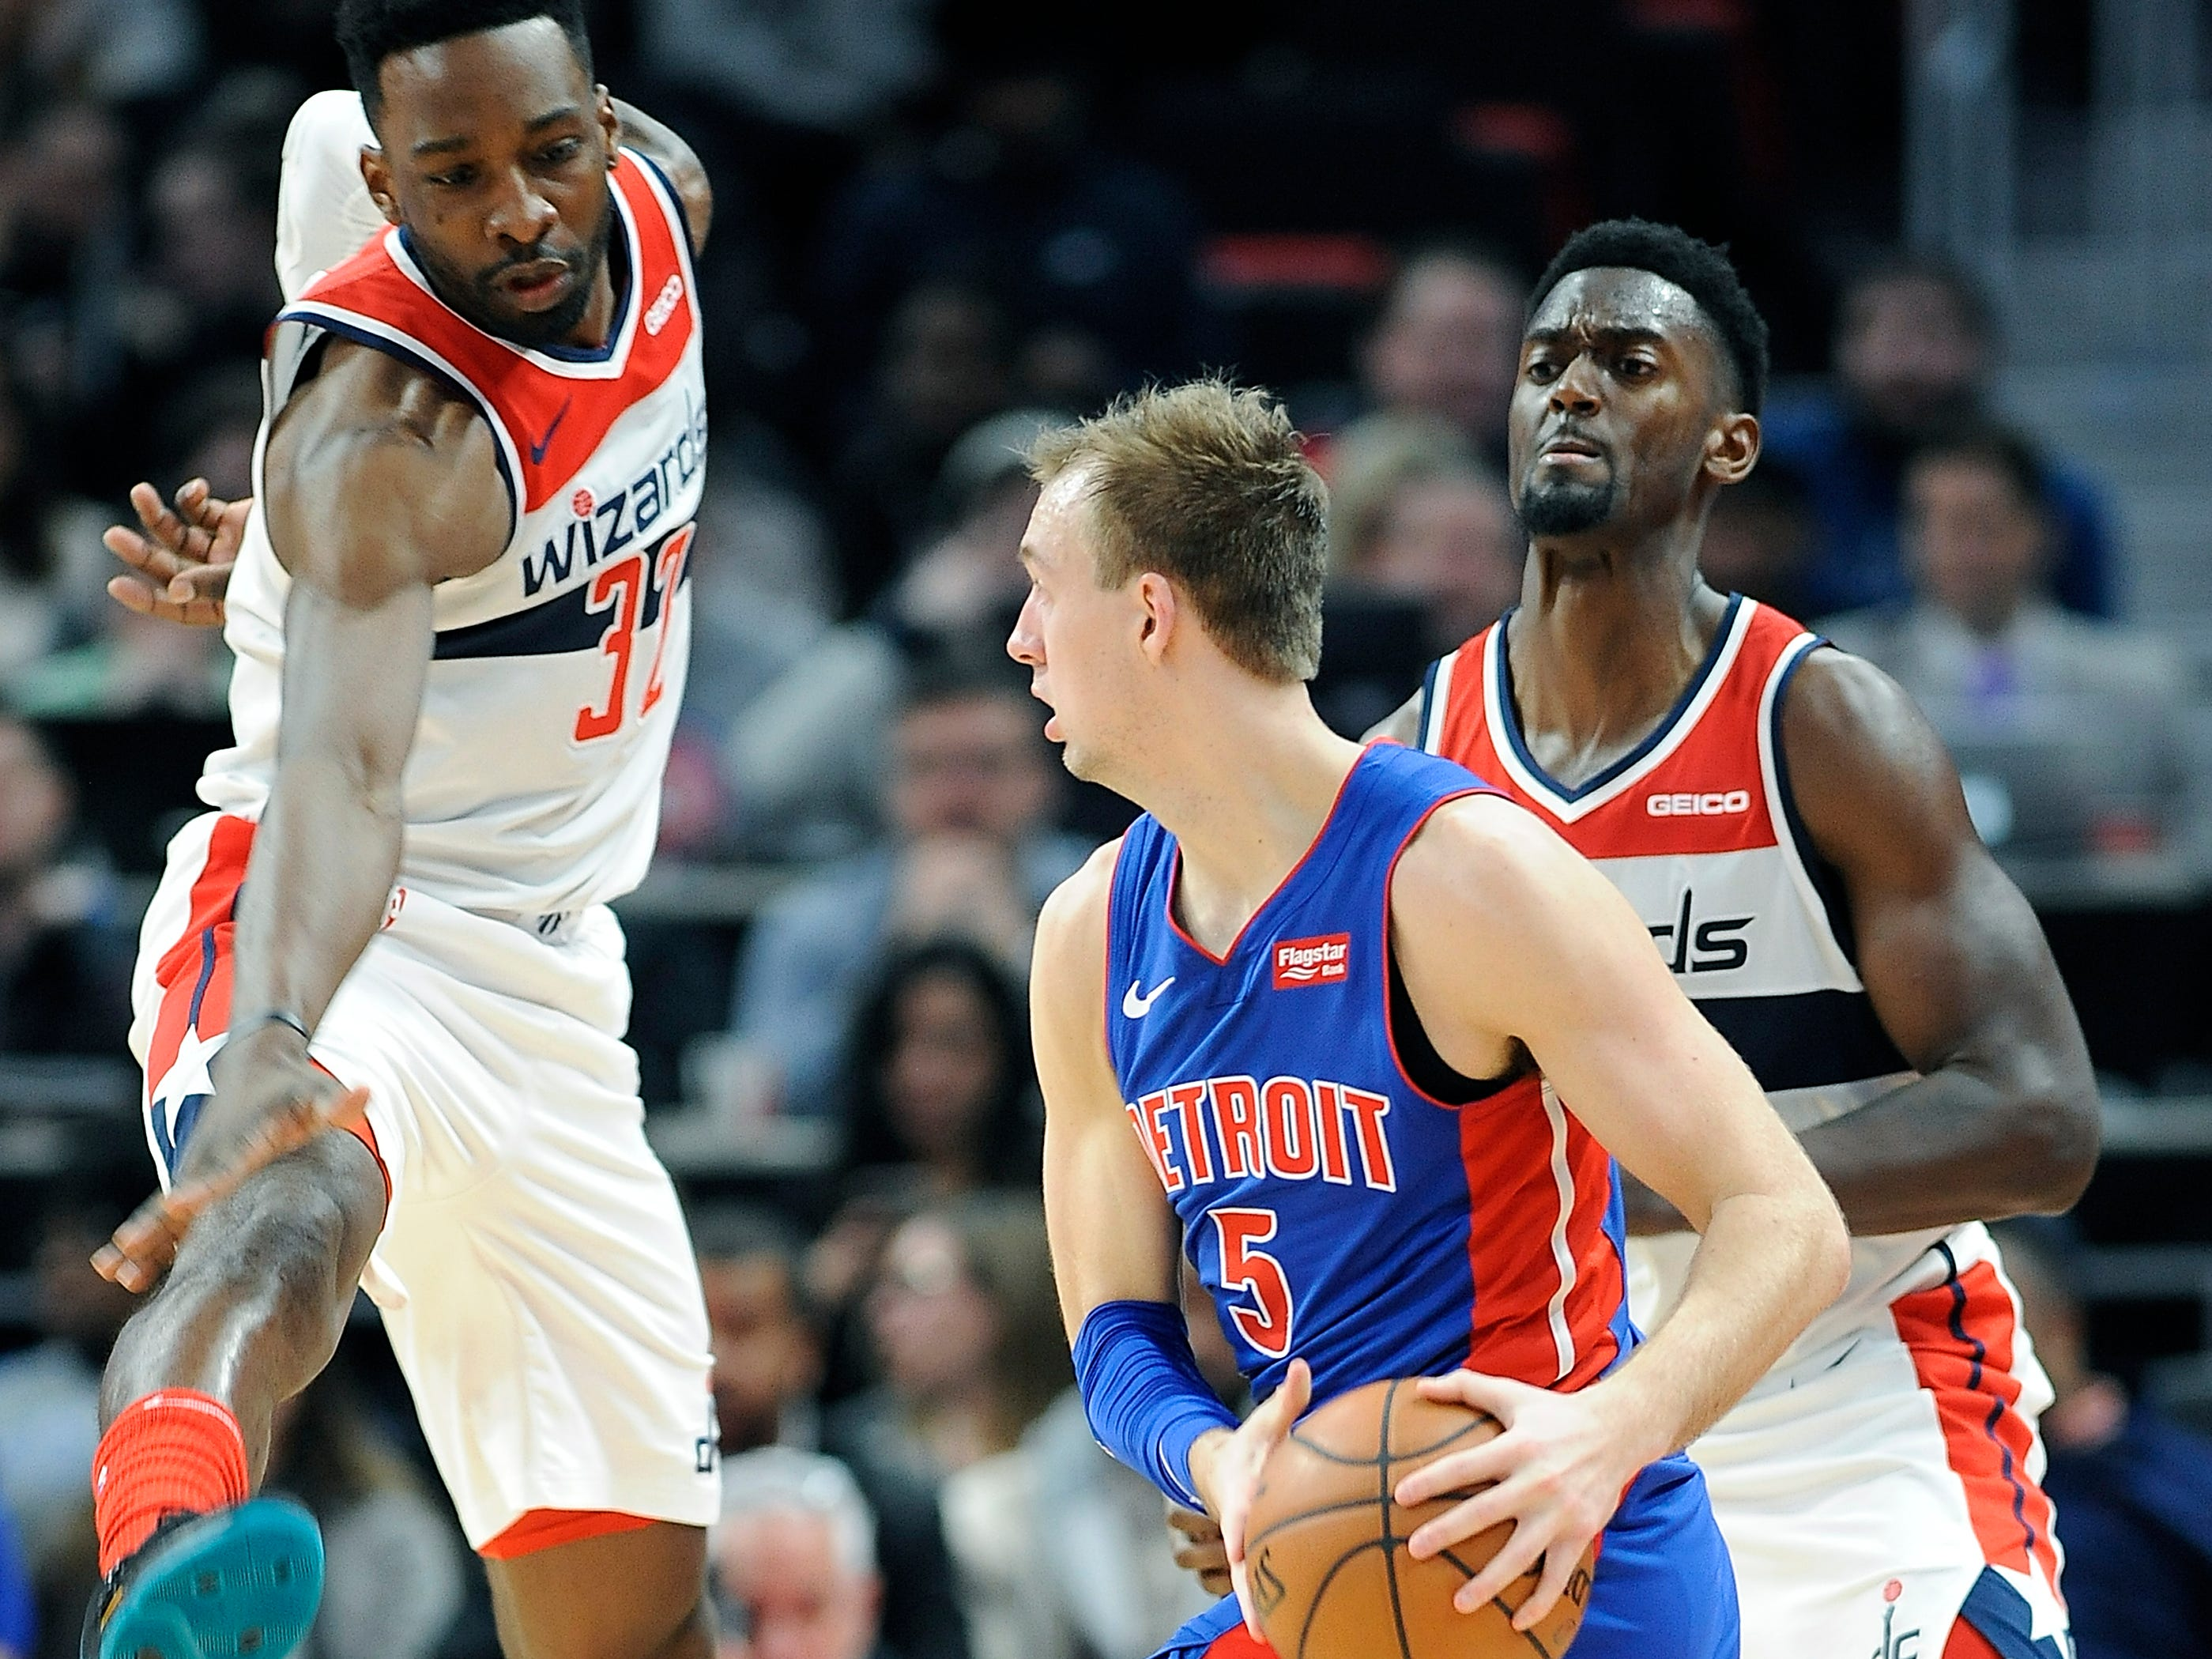 From left, Wizards' Jeff Green and Bobby Portis tries to trap Pistons Luke Kennard in the fourth quarter.